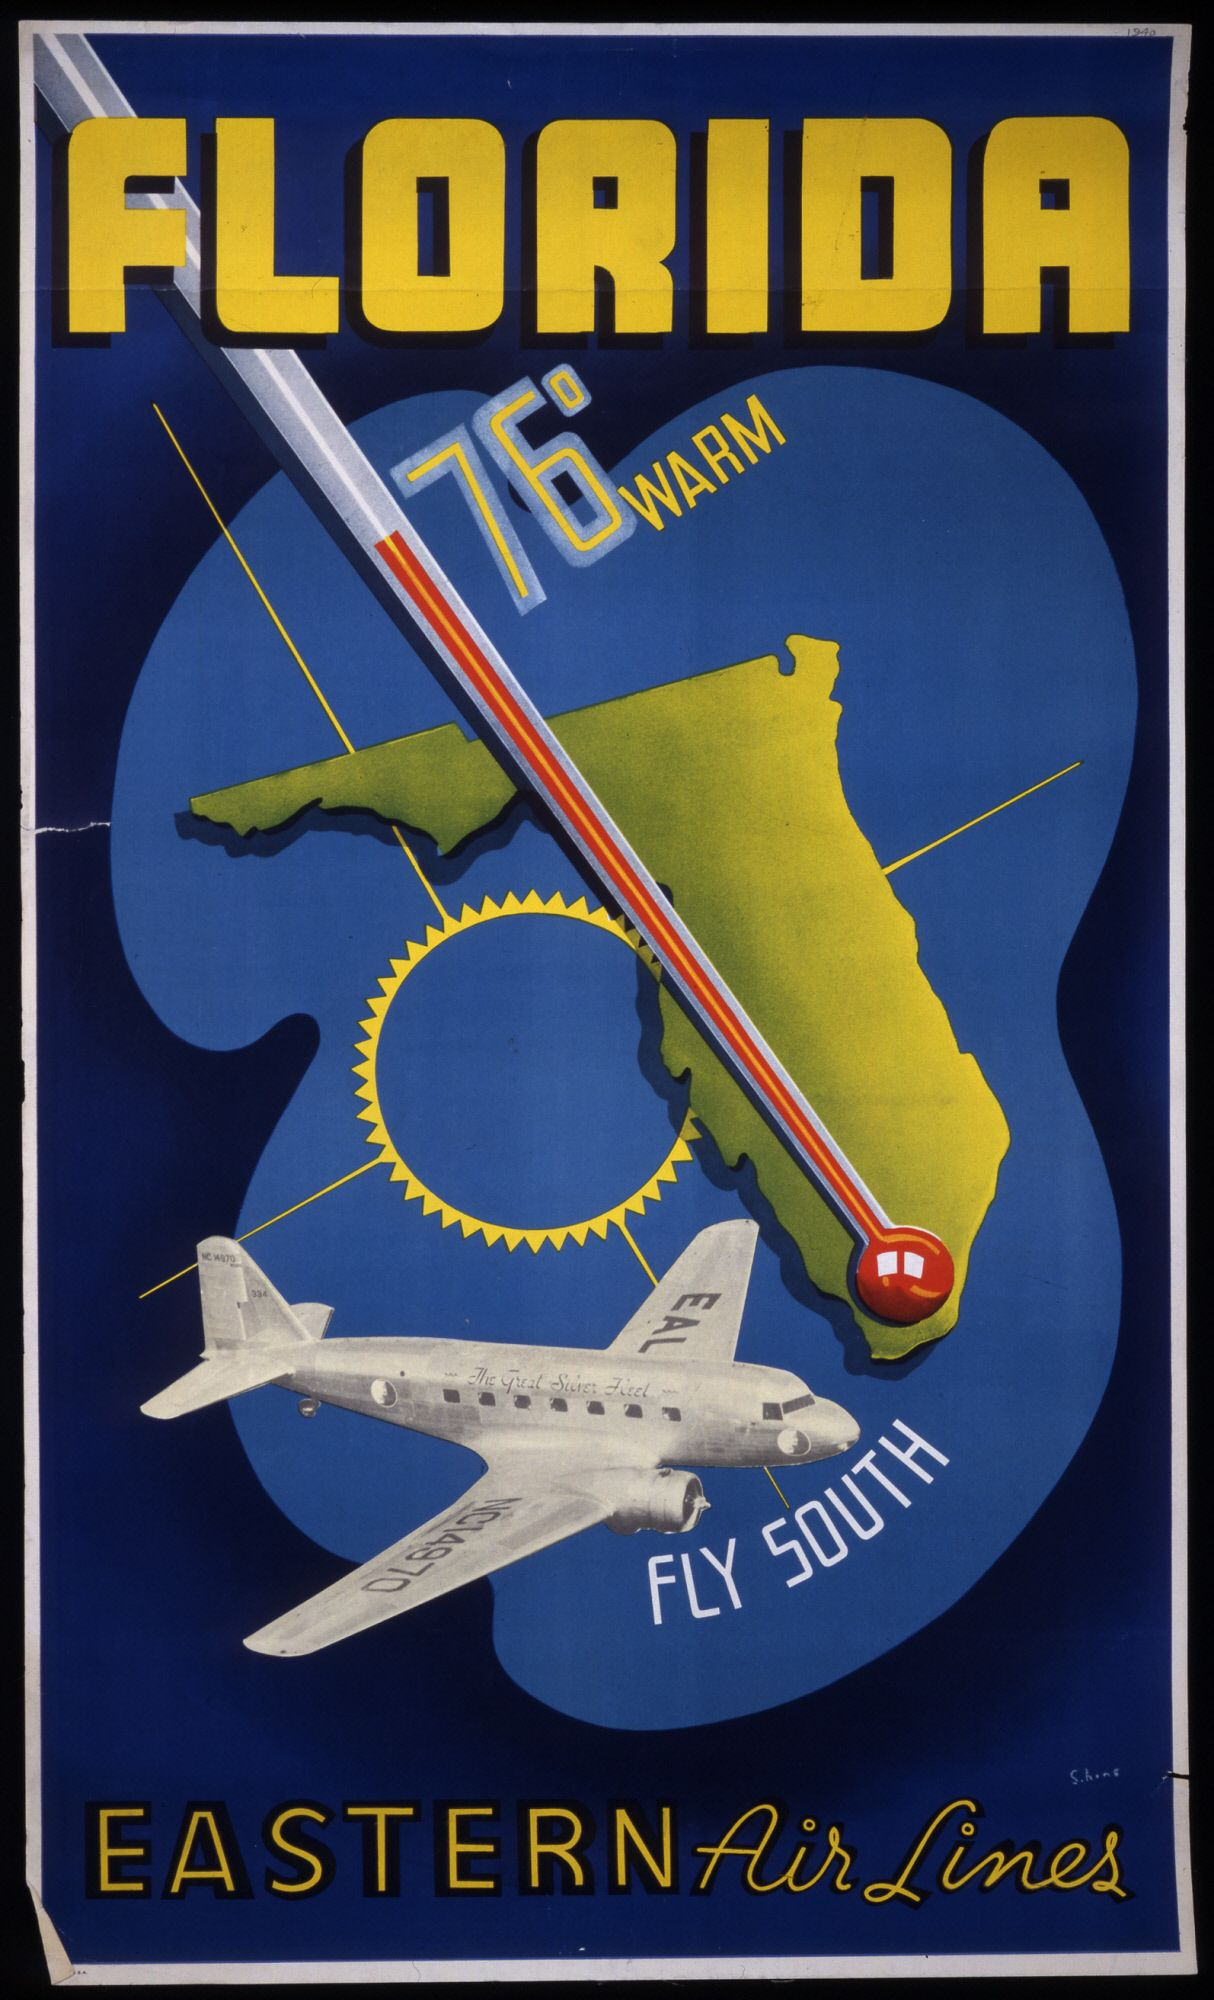 c.1938 Florida Eastern Airlines. Artist S. Hine.